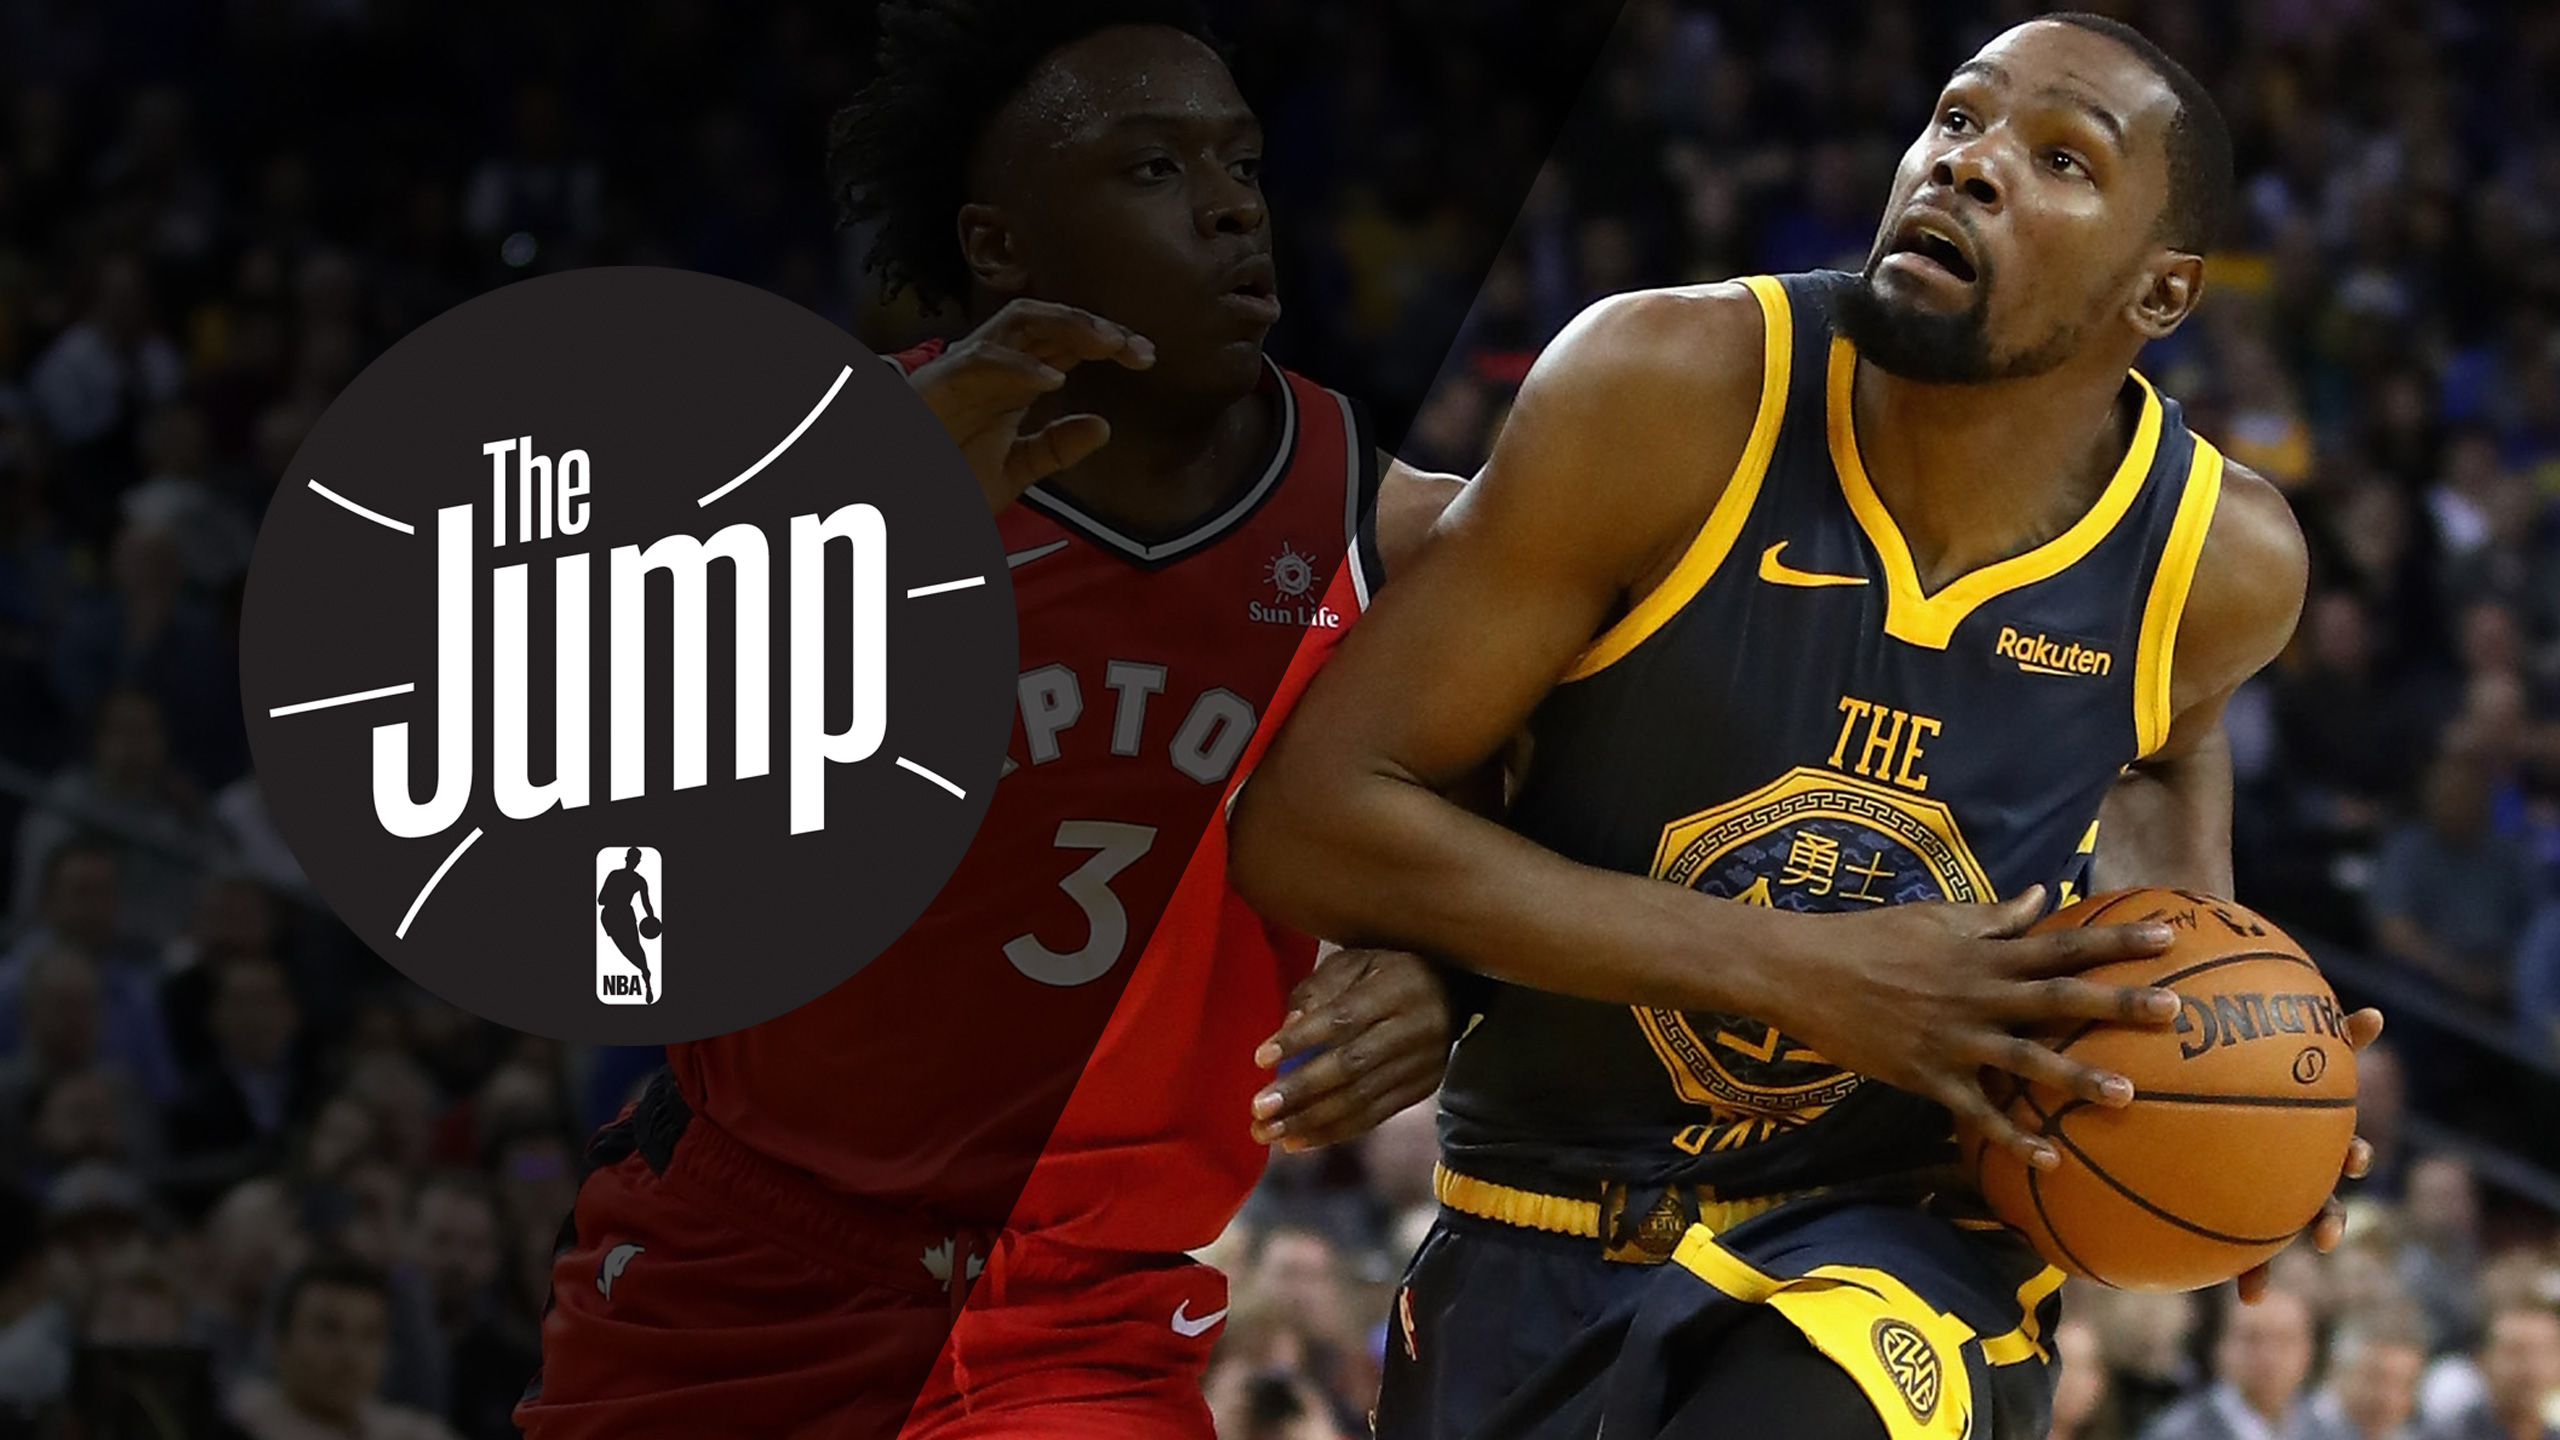 Thu, 12/13 - NBA: The Jump